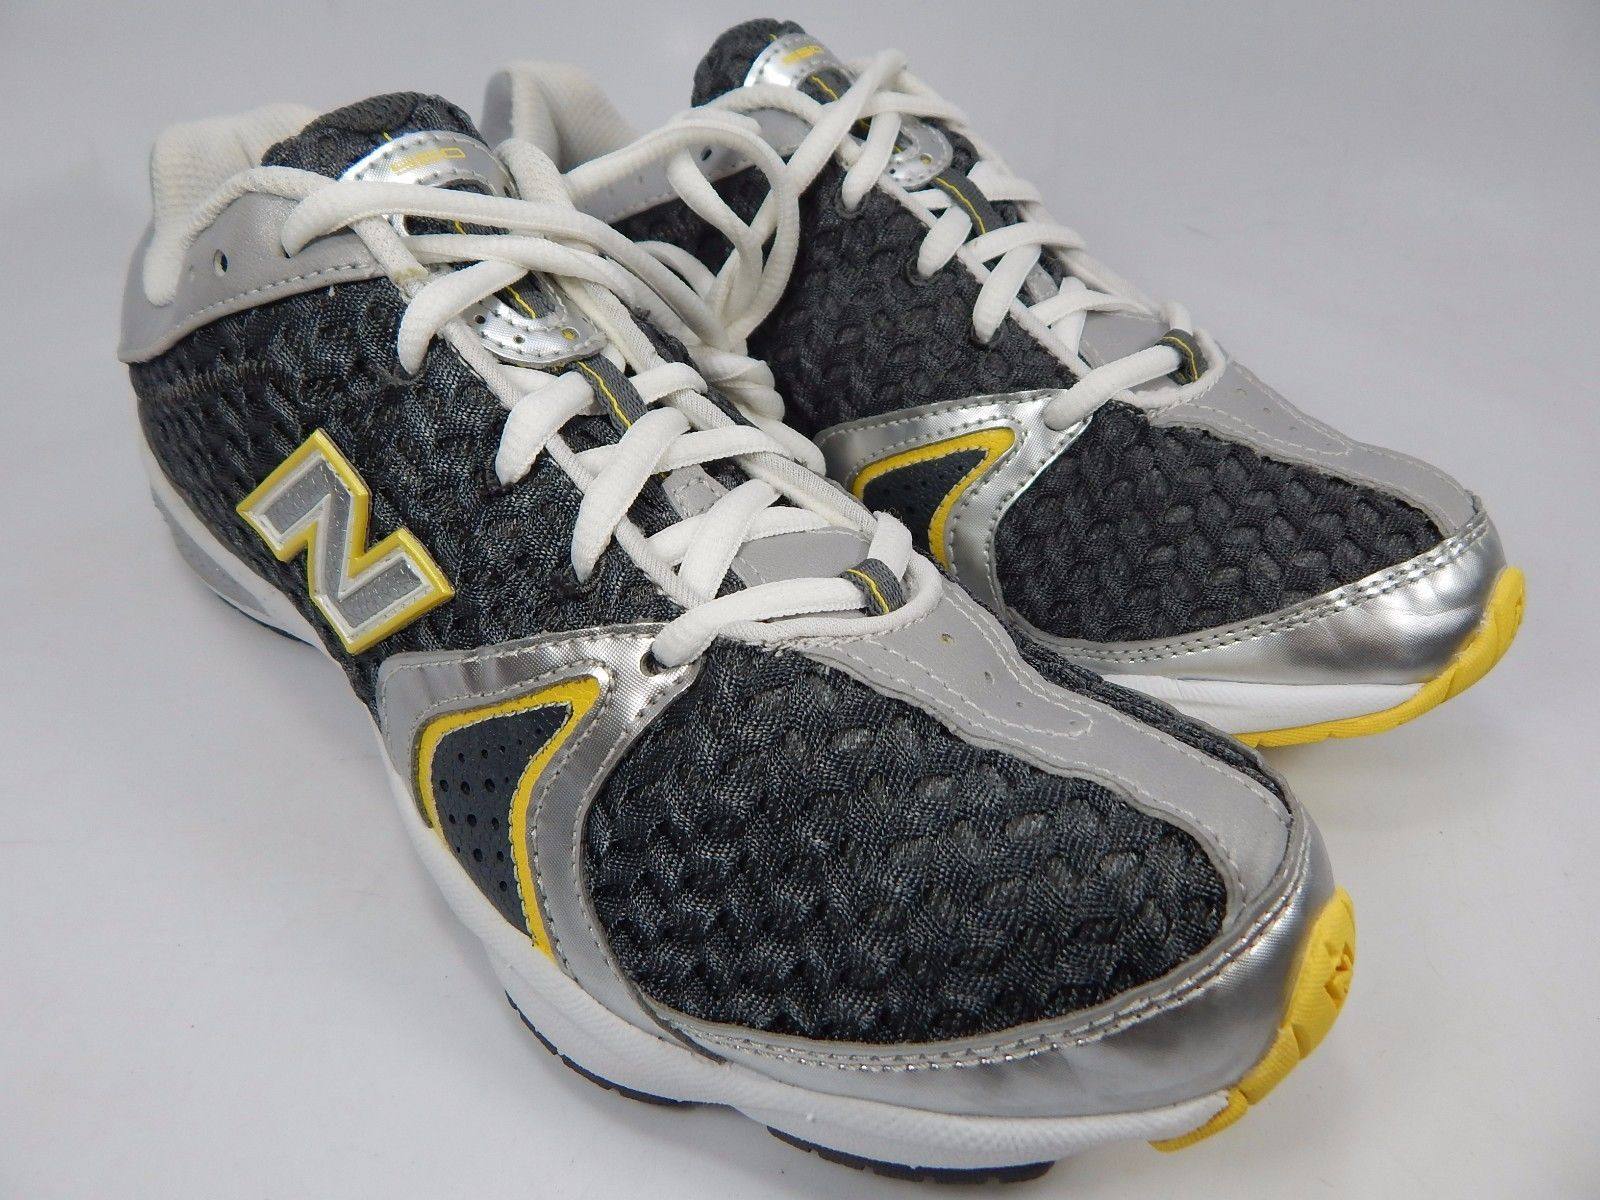 New Balance 550 Women's Running Shoes Size US 9.5 M (B) EU 41 Gray WR550GSY